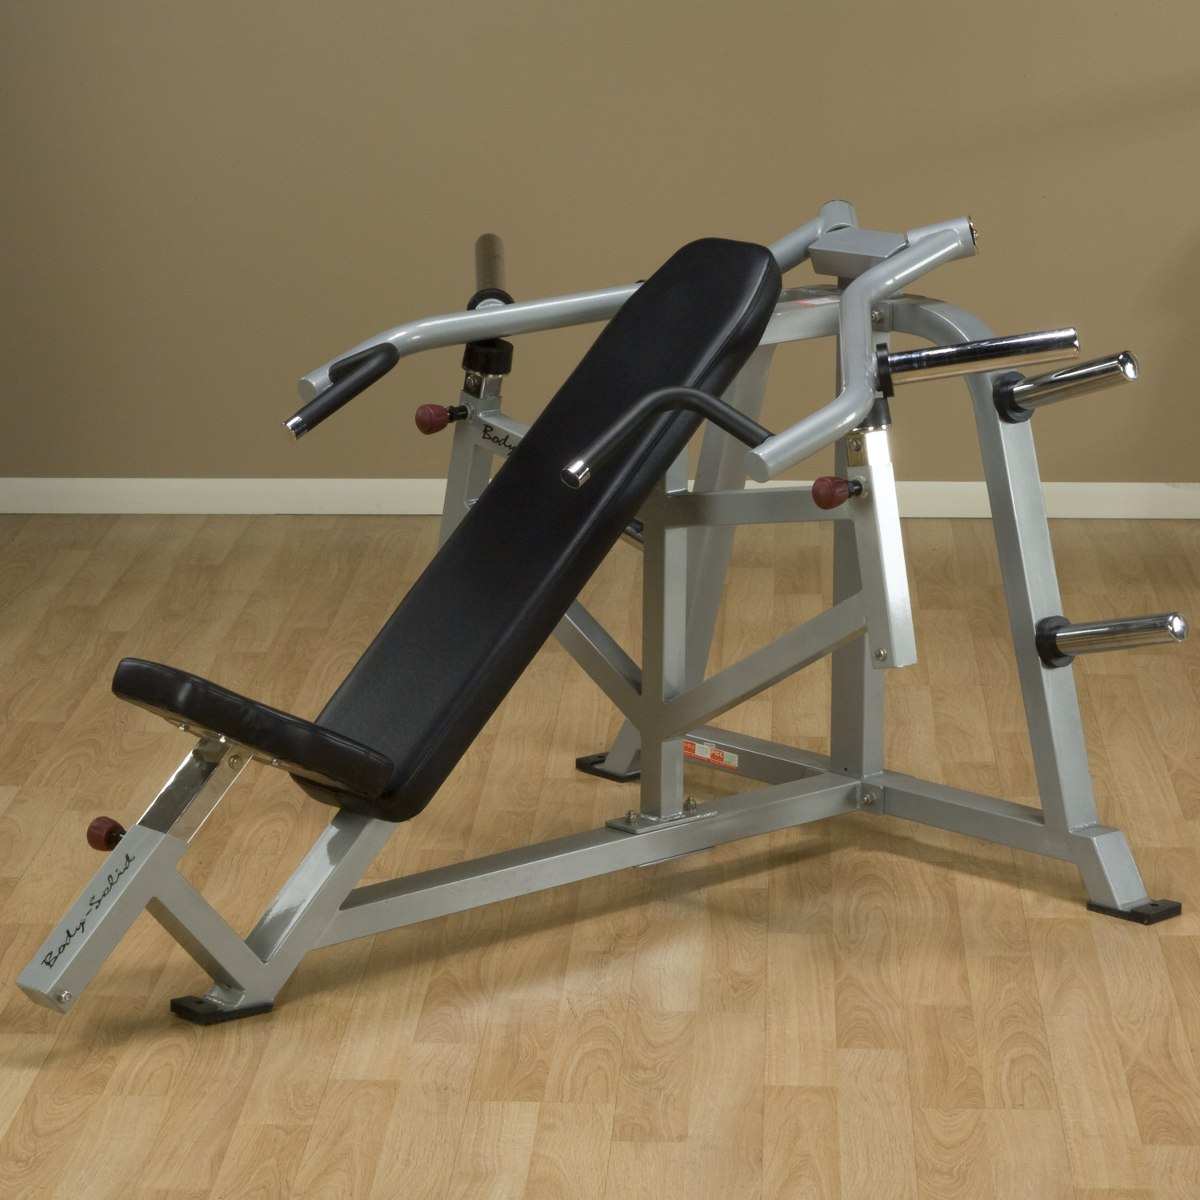 gym bench press chair high office for standing desk tipo hammer inclinado pecho convergente